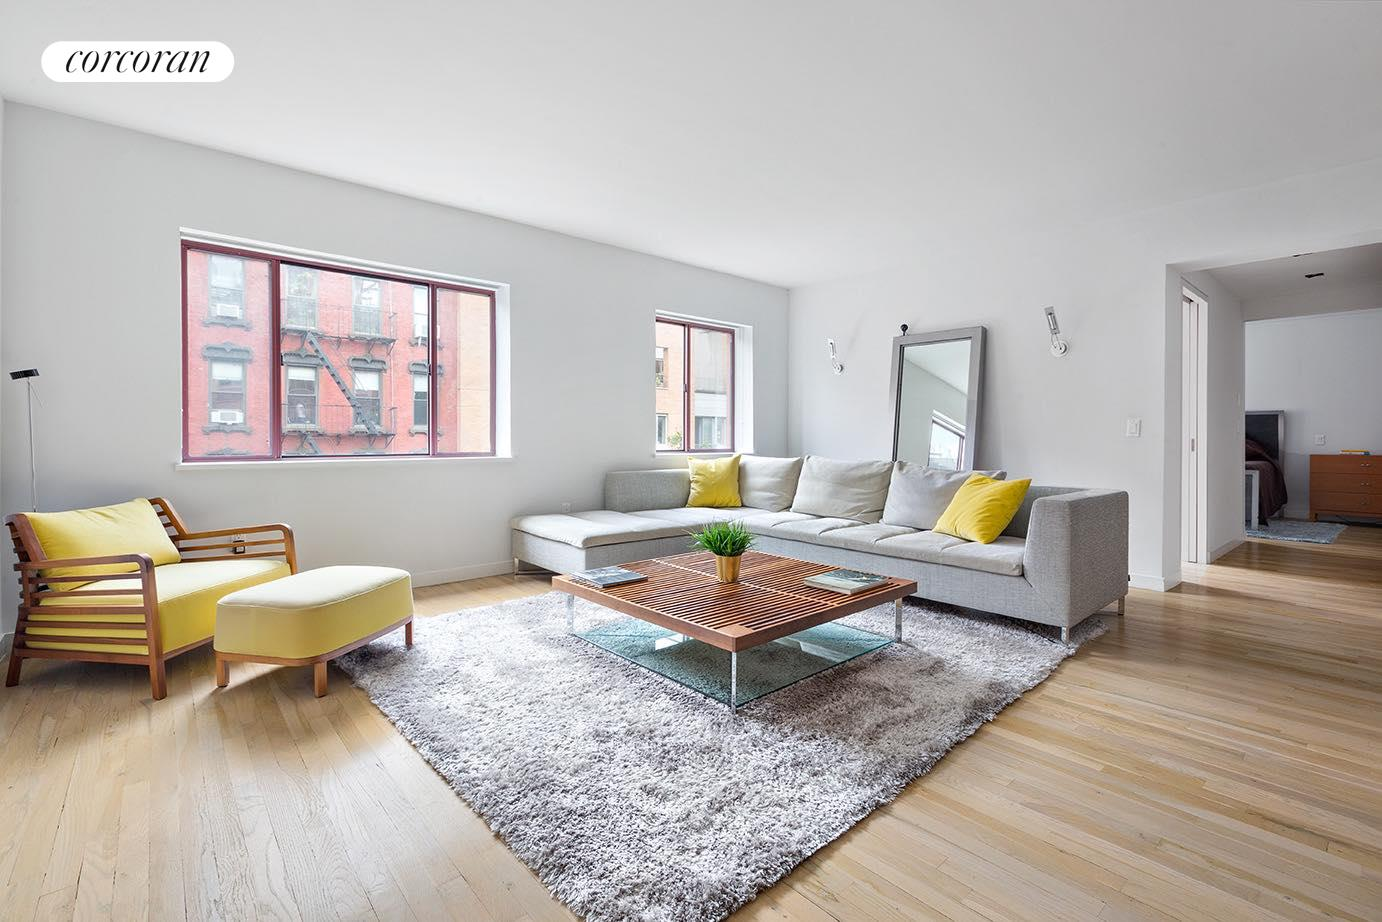 New to Alphabet City in the vibrant East Village and just steps from Tompkins Square Park is this gracious 1,054 square foot 2 bedroom, 2 bathroom CONDOMINIUM at 217 East 7th Street, 4CD. Recently gut renovated to the highest of standards, this spacious half-floor home enjoys a large L-shaped living/dining room that spans 22' and is graced with two oversized south-facing windows allowing tons of natural light to flow throughout the home. You'll also notice beautiful hardwood floors and a dedicated dining area that can comfortably accommodate a large dining table. An open windowed kitchen boasts a suite of top-of-the-line appliances including Subzero refrigerator, Subzero wine storage, Viking 4-burner gas stove, Miele dishwasher, and Viking built-in microwave. Caesarstone counters and backsplash, custom matte black cabinetry, and a large breakfast bar with floating glass cabinet complete the space. A spacious gallery with custom built-in shelves leads you into both bedrooms. The primary bedroom comfortably accommodates king size furniture and enjoys a large walk-in closet with a full-size Miele washer/dryer, and a beautifully appointed ensuite bathroom replete with Kohler fixtures throughout. The second bedroom, currently configured as a home office, is graced with an abundance of natural light and bright south exposures.Finally, the home is replete with high efficiency 3-zone HVAC, LED lighting, pocket doors throughout, unique soffits which conceal window treatments, and a Siedle video intercom system. 217 East 7th Street is a boutique condominium with a roof deck, video intercom, bike room, exercise room, and only 2 apartments per floor in the very heart of the East Village and just a stone's throw from a slew of restaurants, bars, cafes, and the best of Tompkins Square Park. Pets welcome.